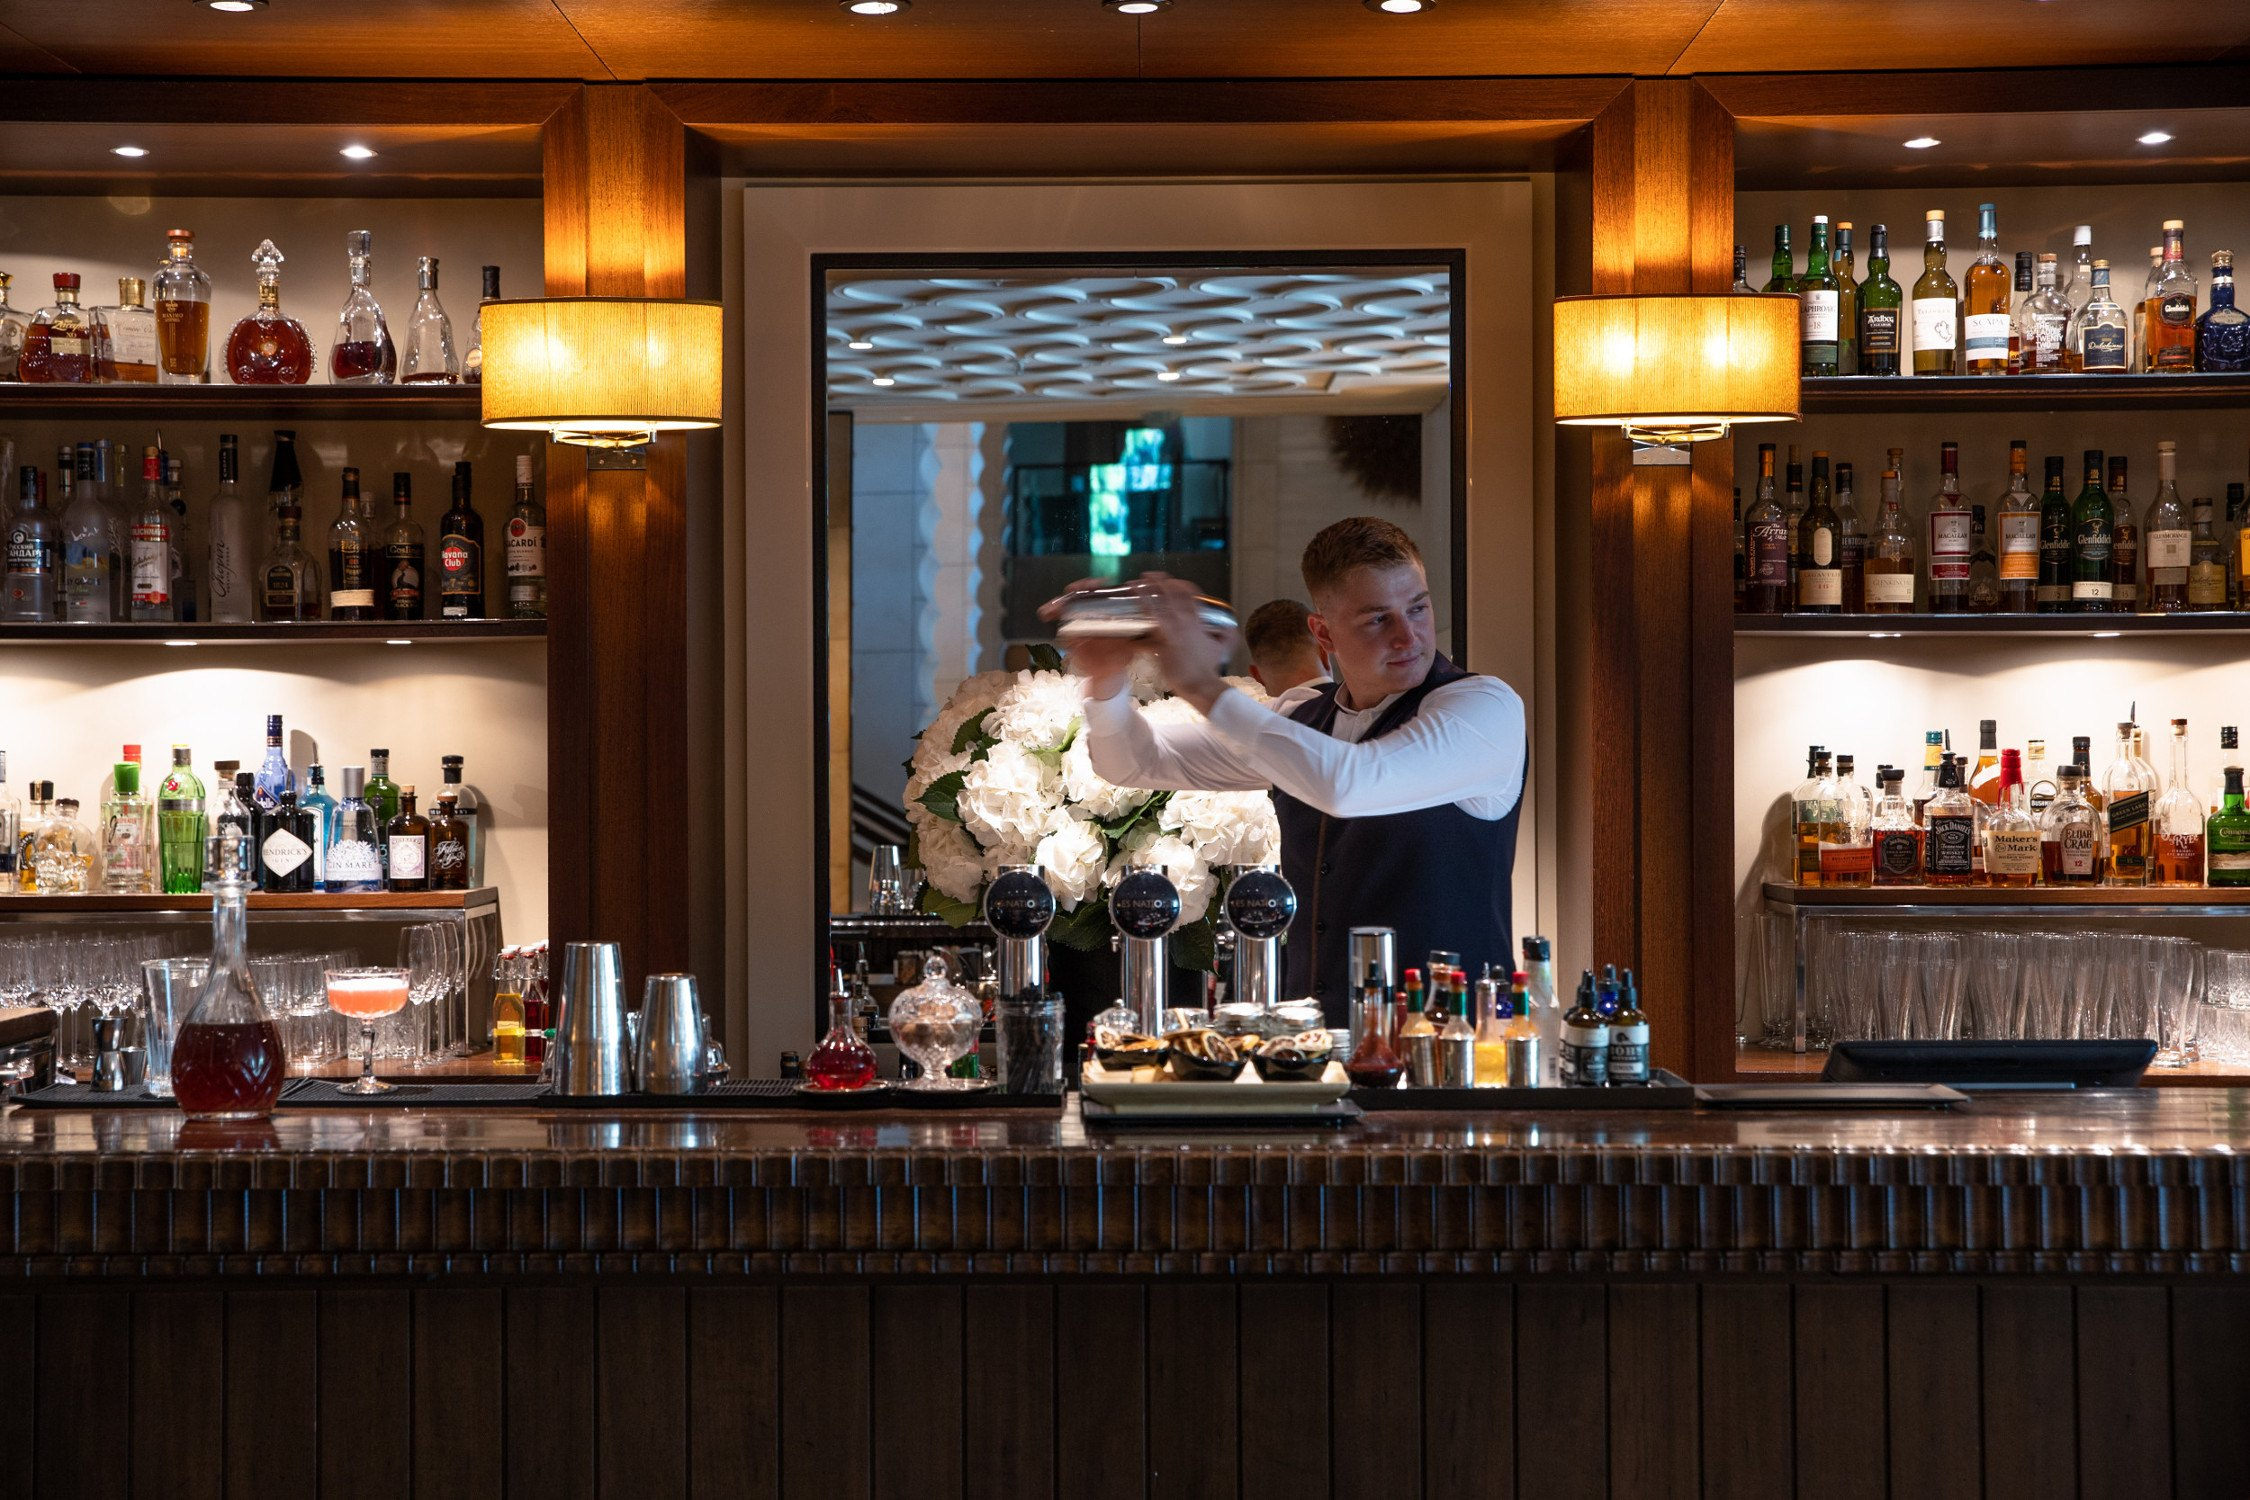 InterContinental-Geneva-Suisse-Hotel-les-Nations-bar-2